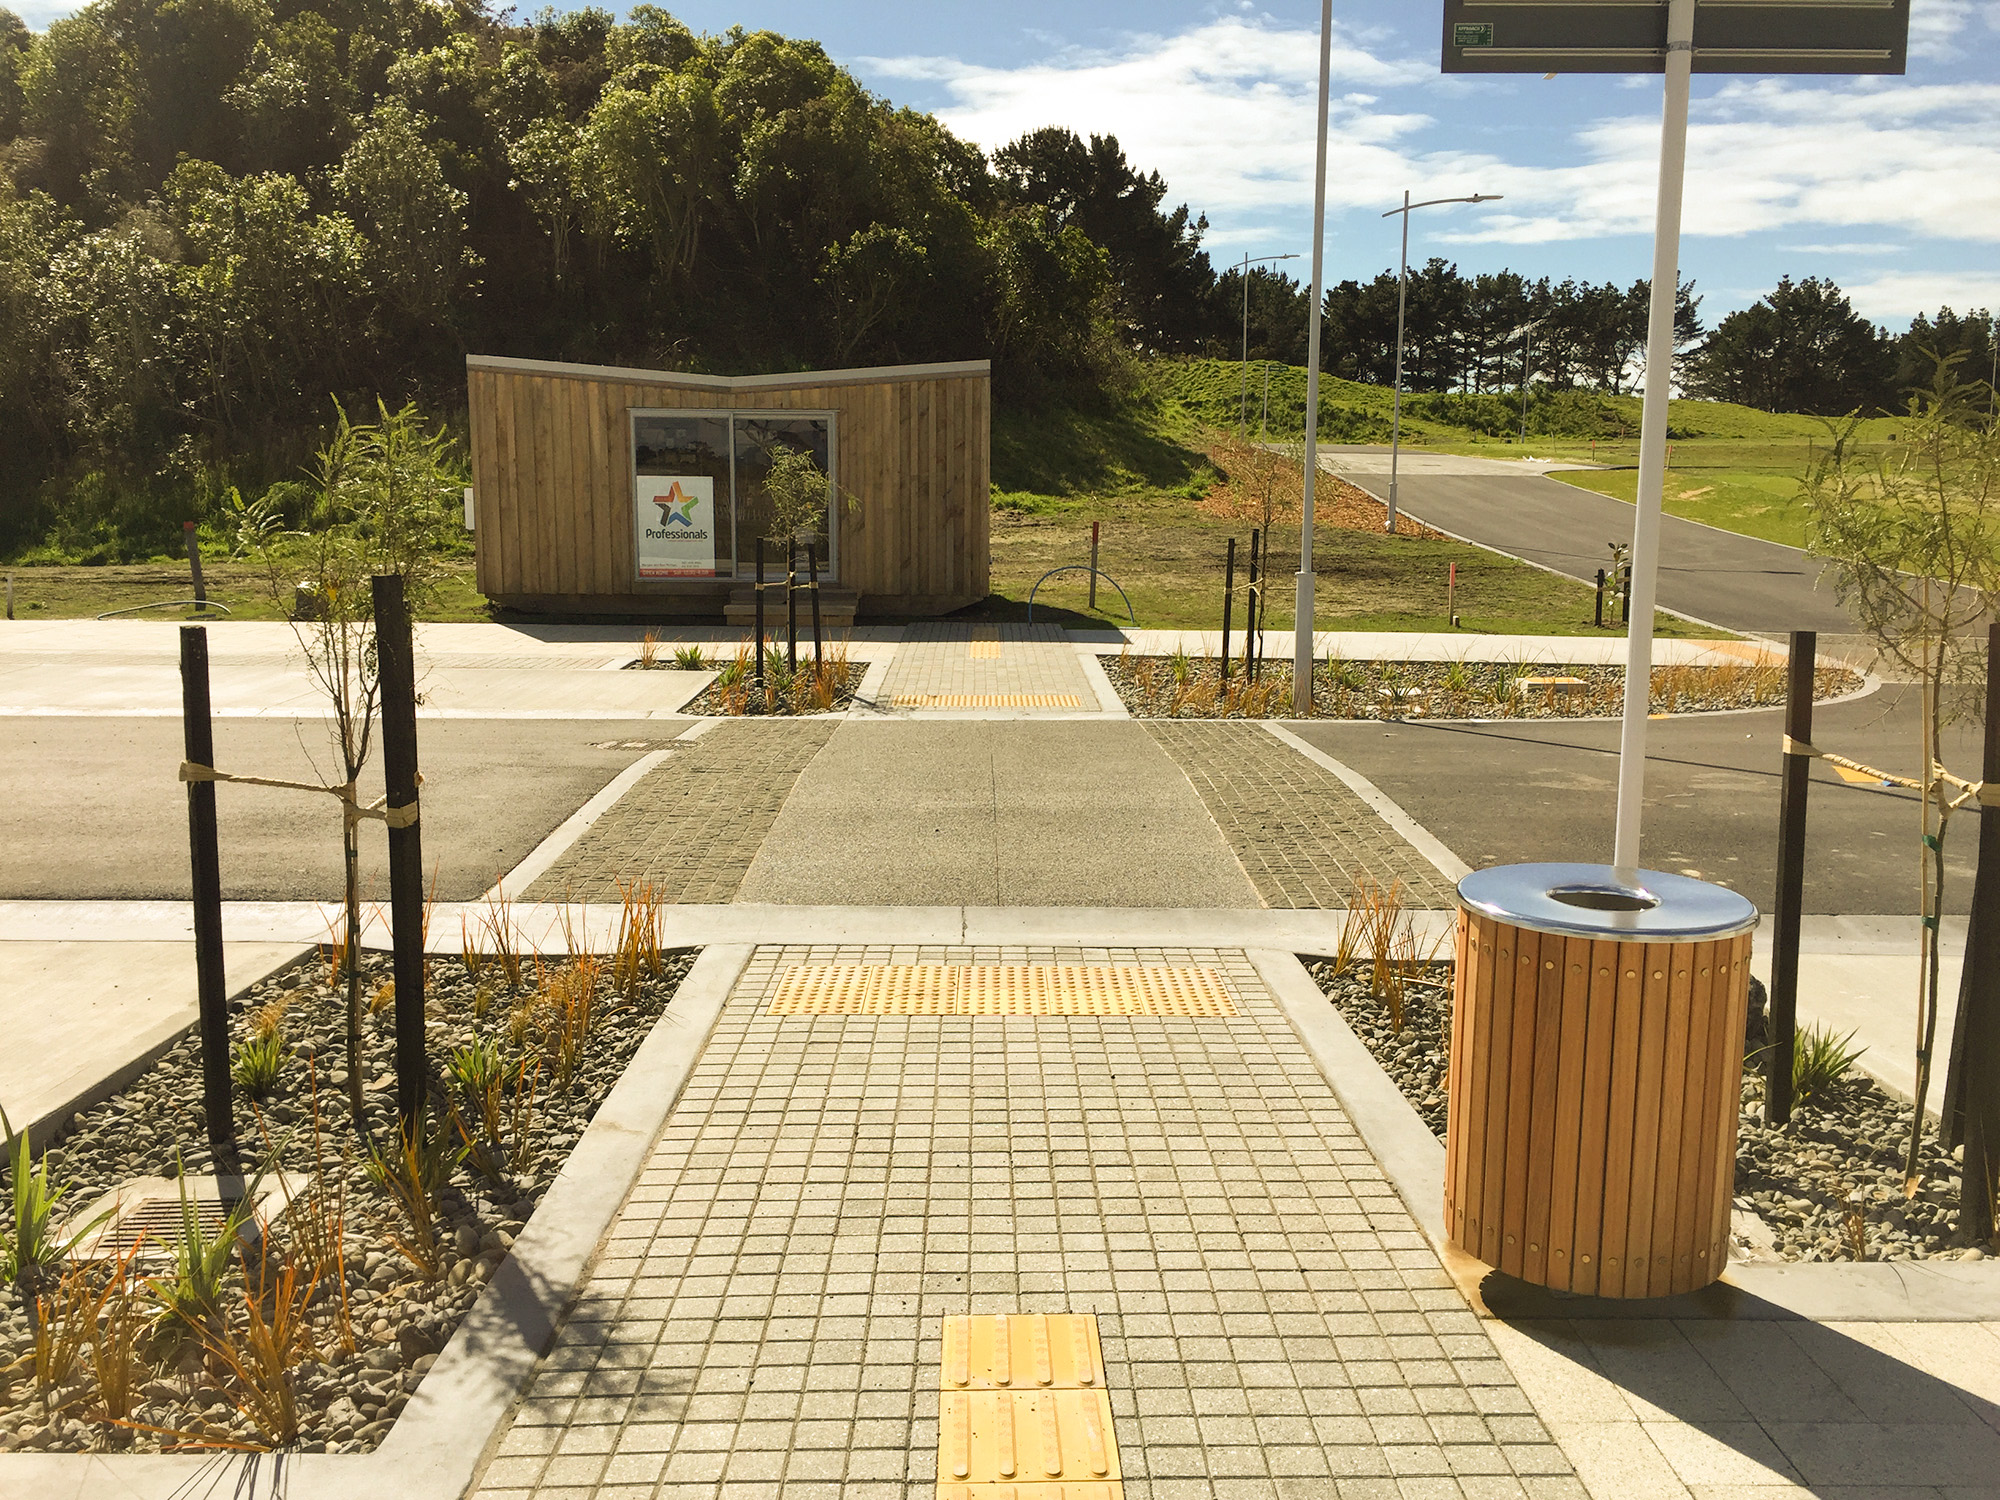 COURTESY CROSSING WITH BLUESTONE SETT RUMBLE STRIPS AND TACTILE PAVERS